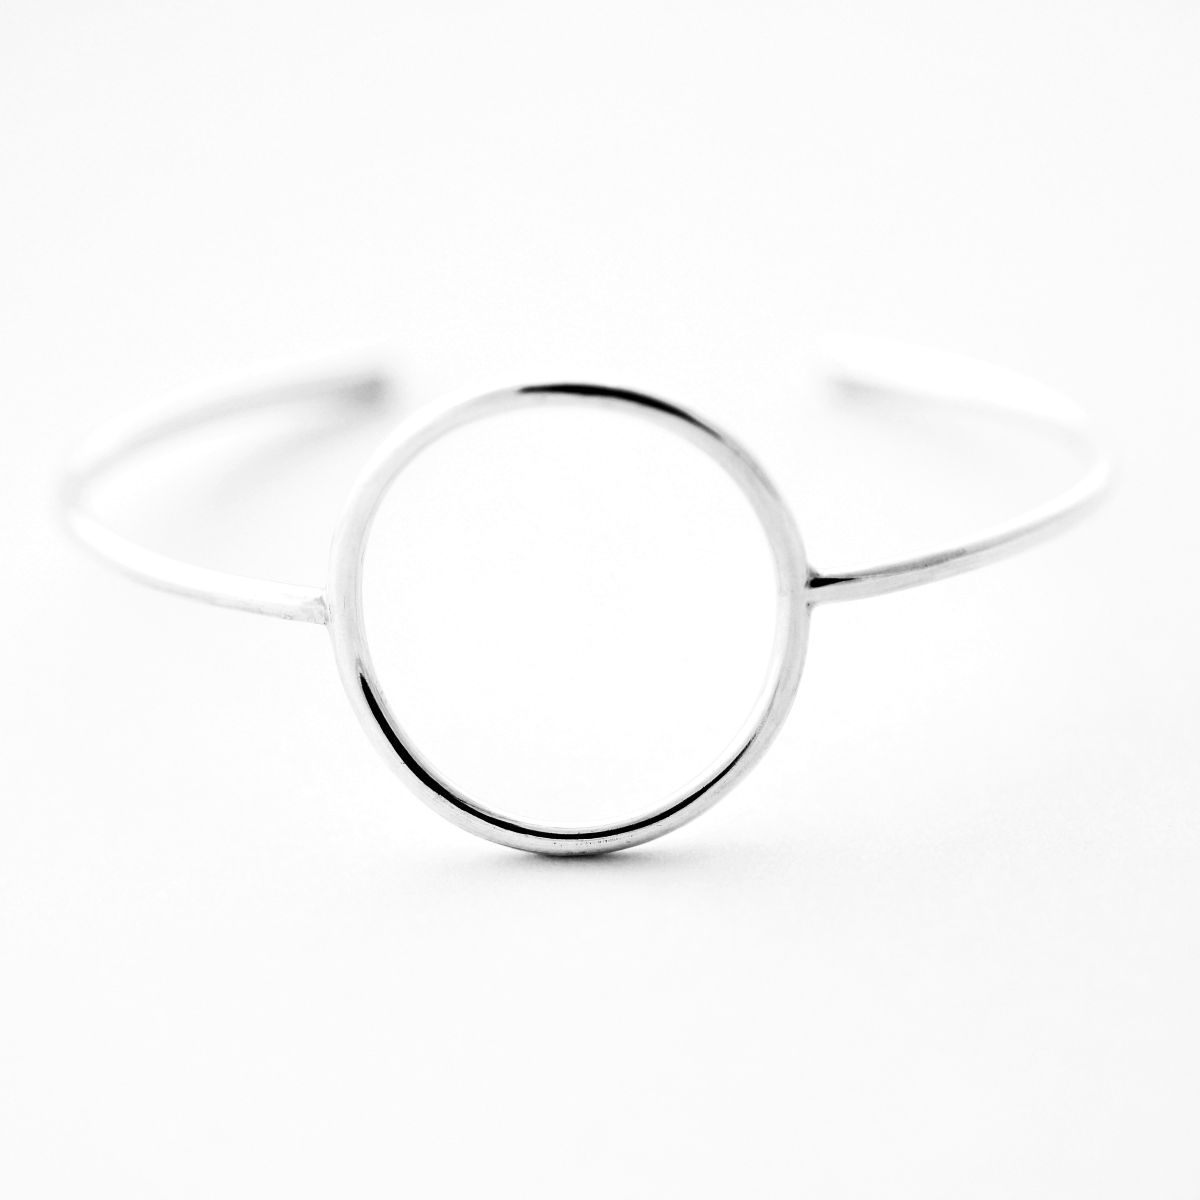 Open Circle Sterling Silver Cuff Bracelet - product images  of